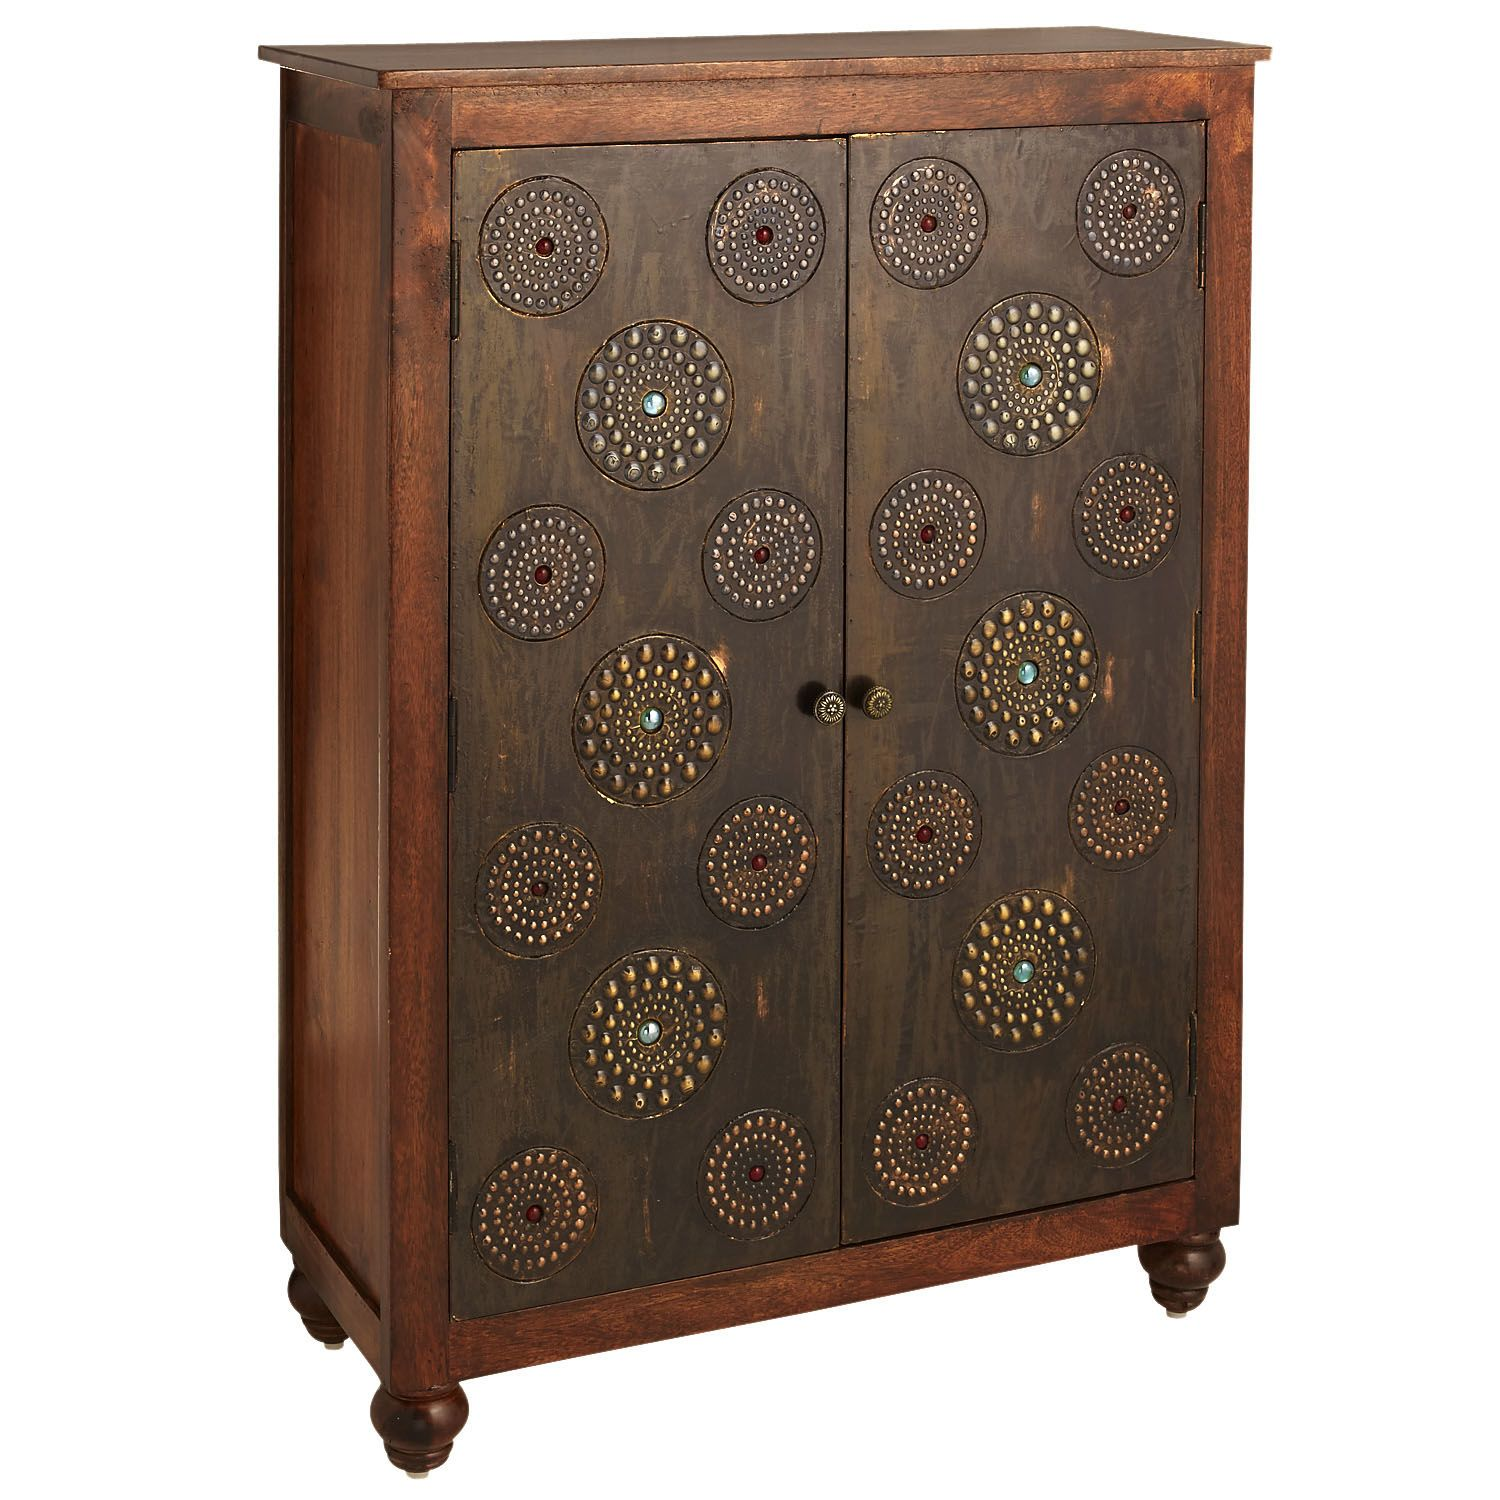 Kanpur Cabinet | Family room furniture, Living room inspiration ...